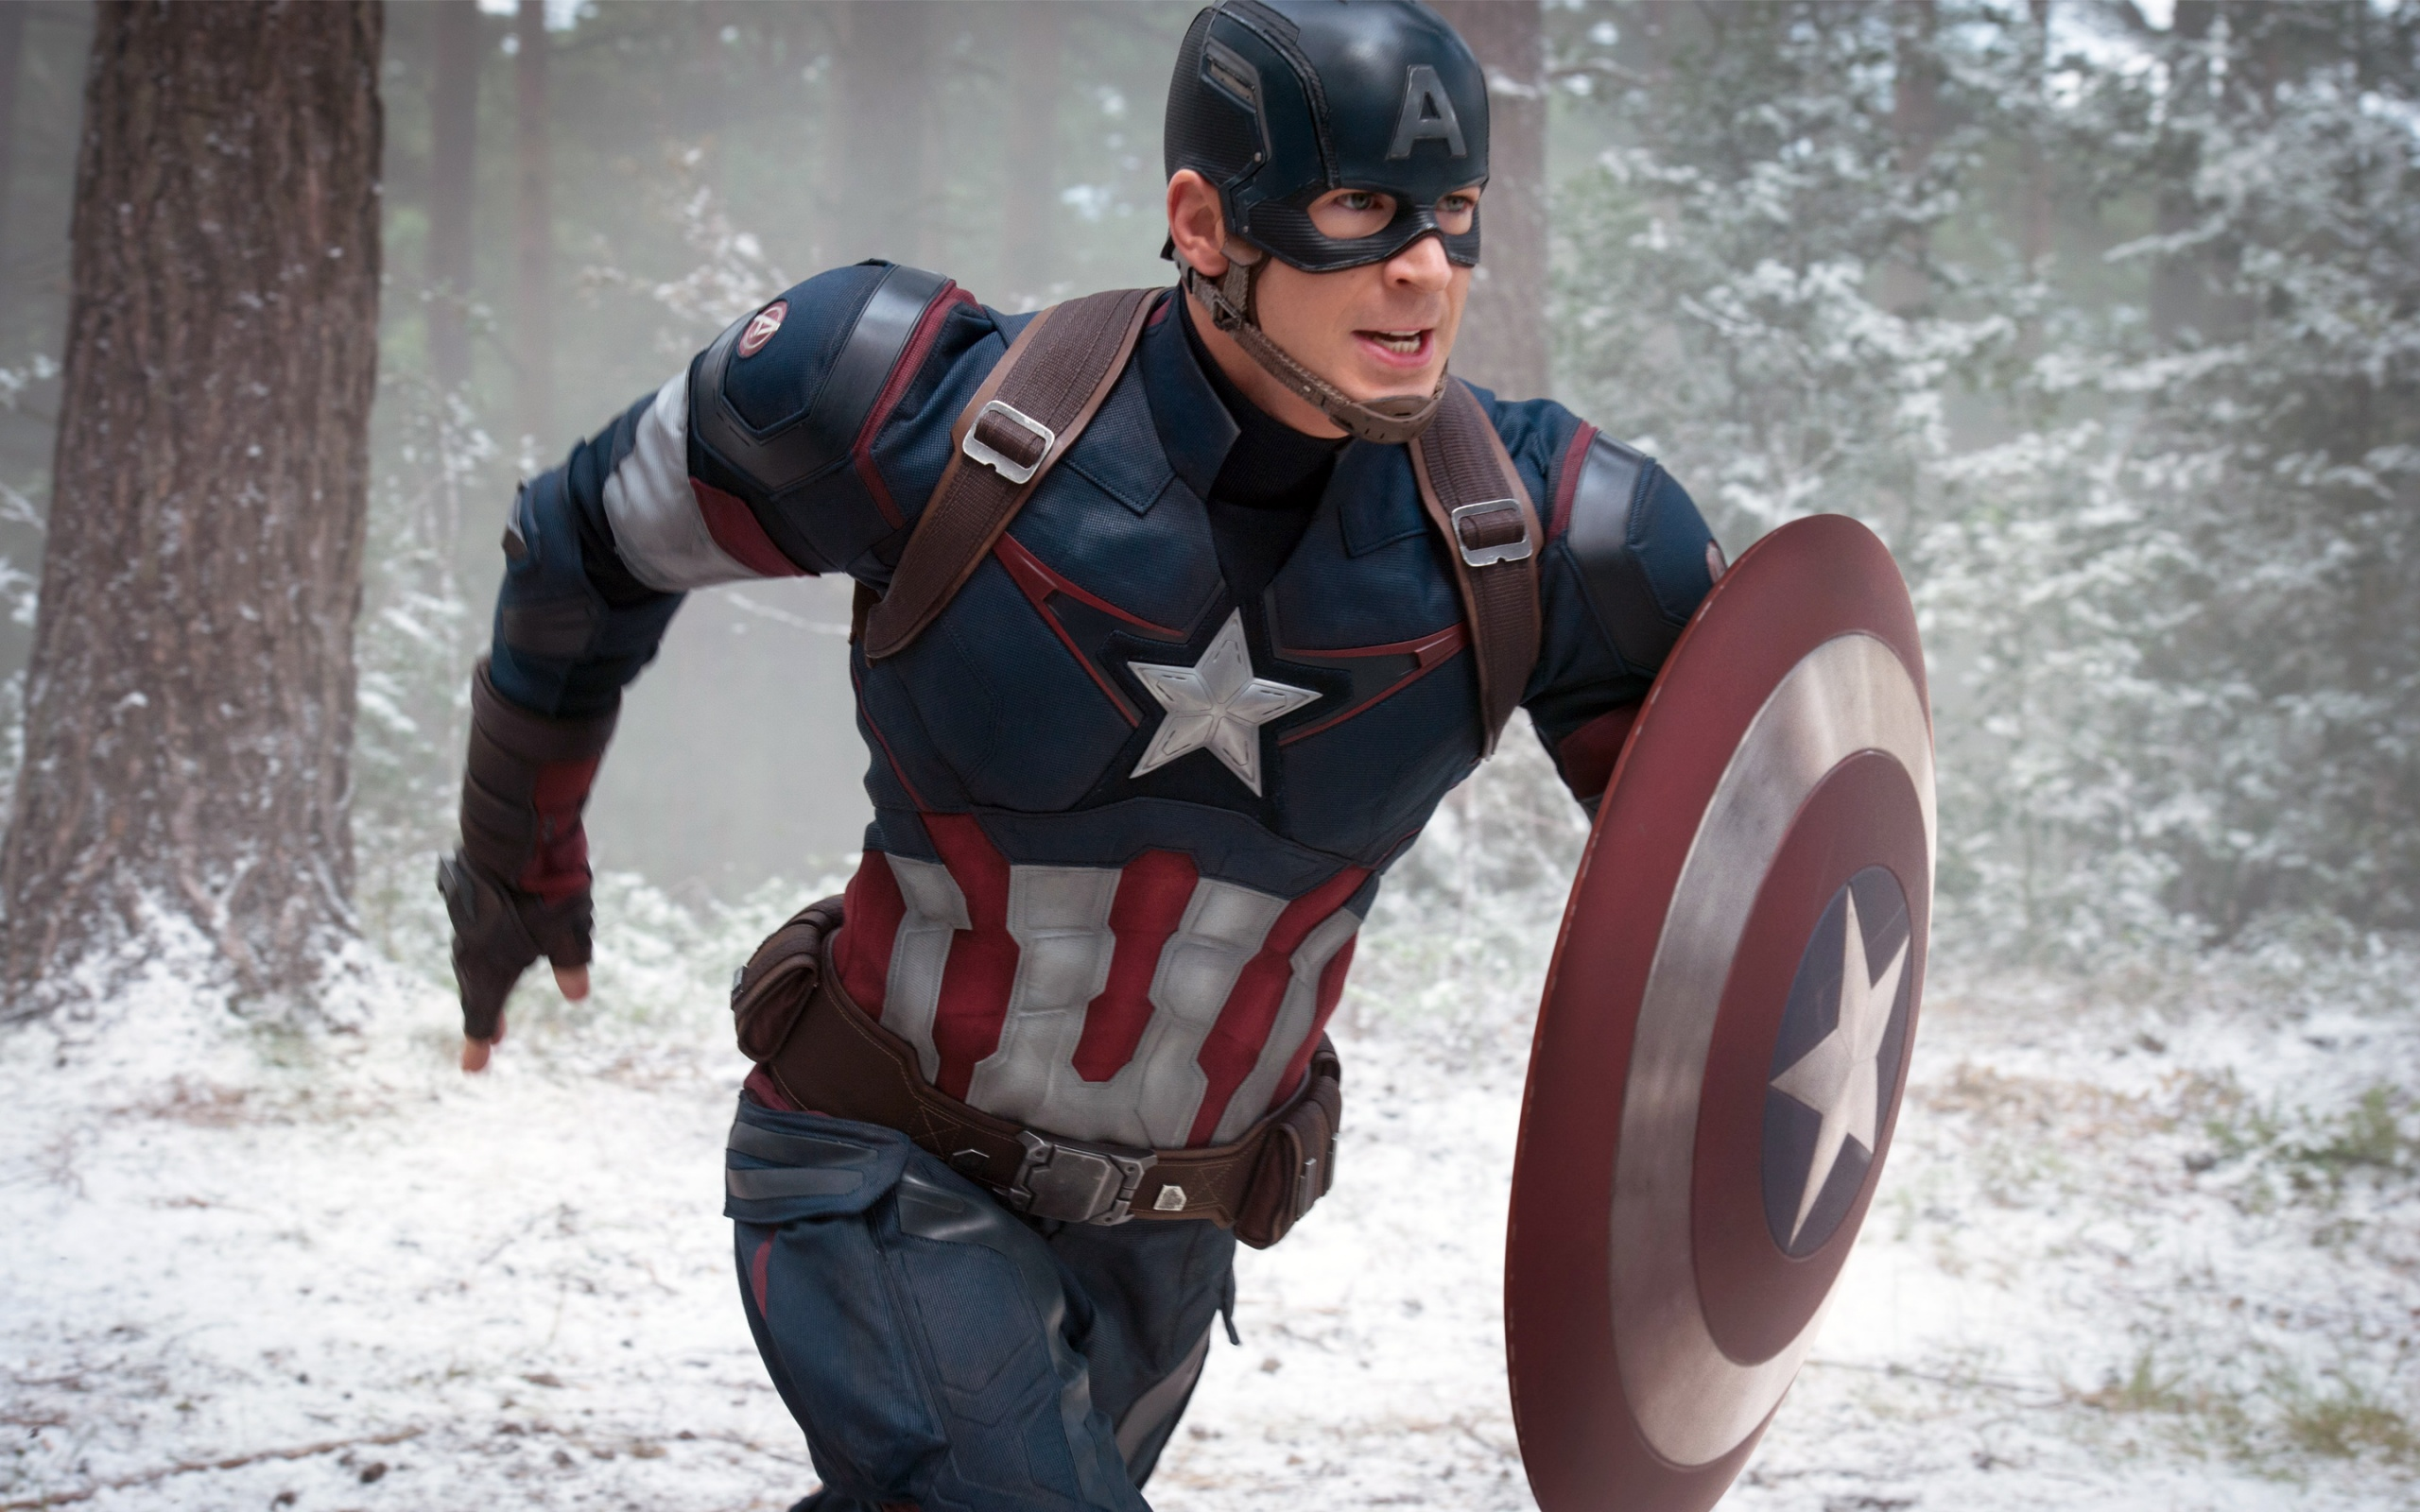 The Avengers Images Captain America Hd Wallpaper And Background